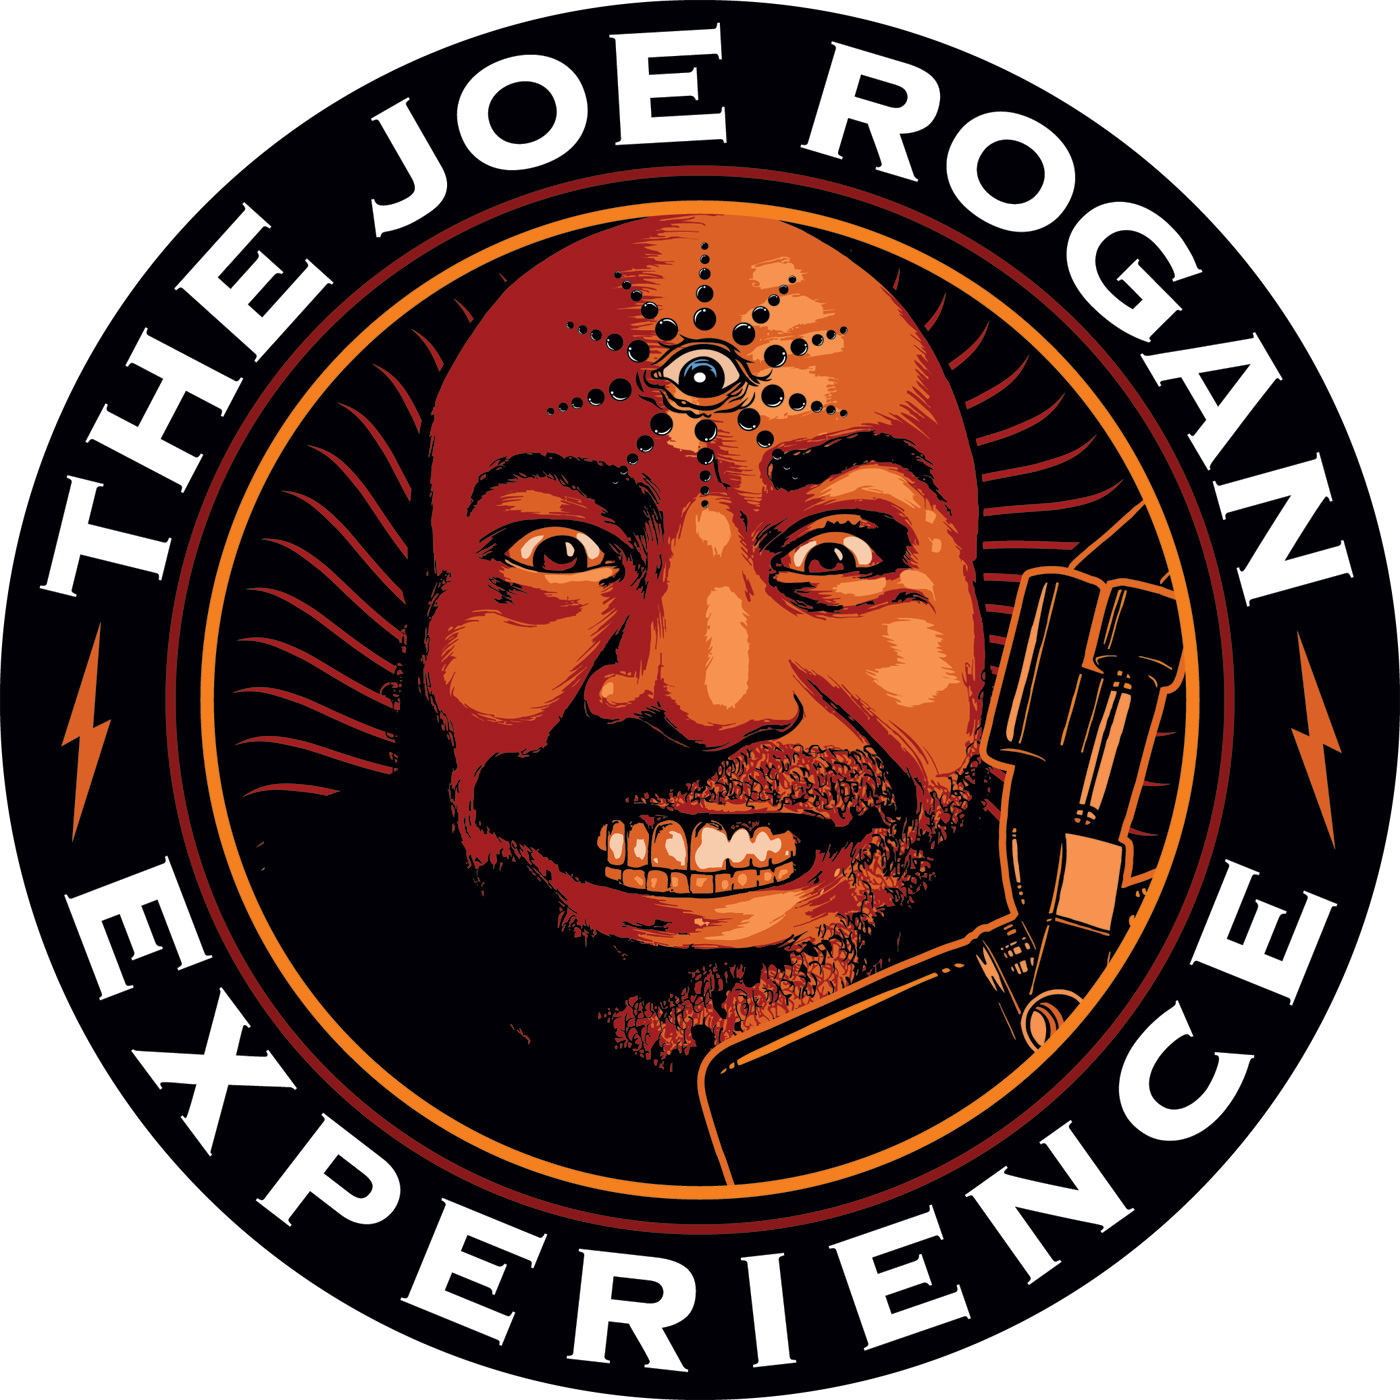 The Joe Rogan Experience PODCAST #76 - Bobby Lee, Brian Redban